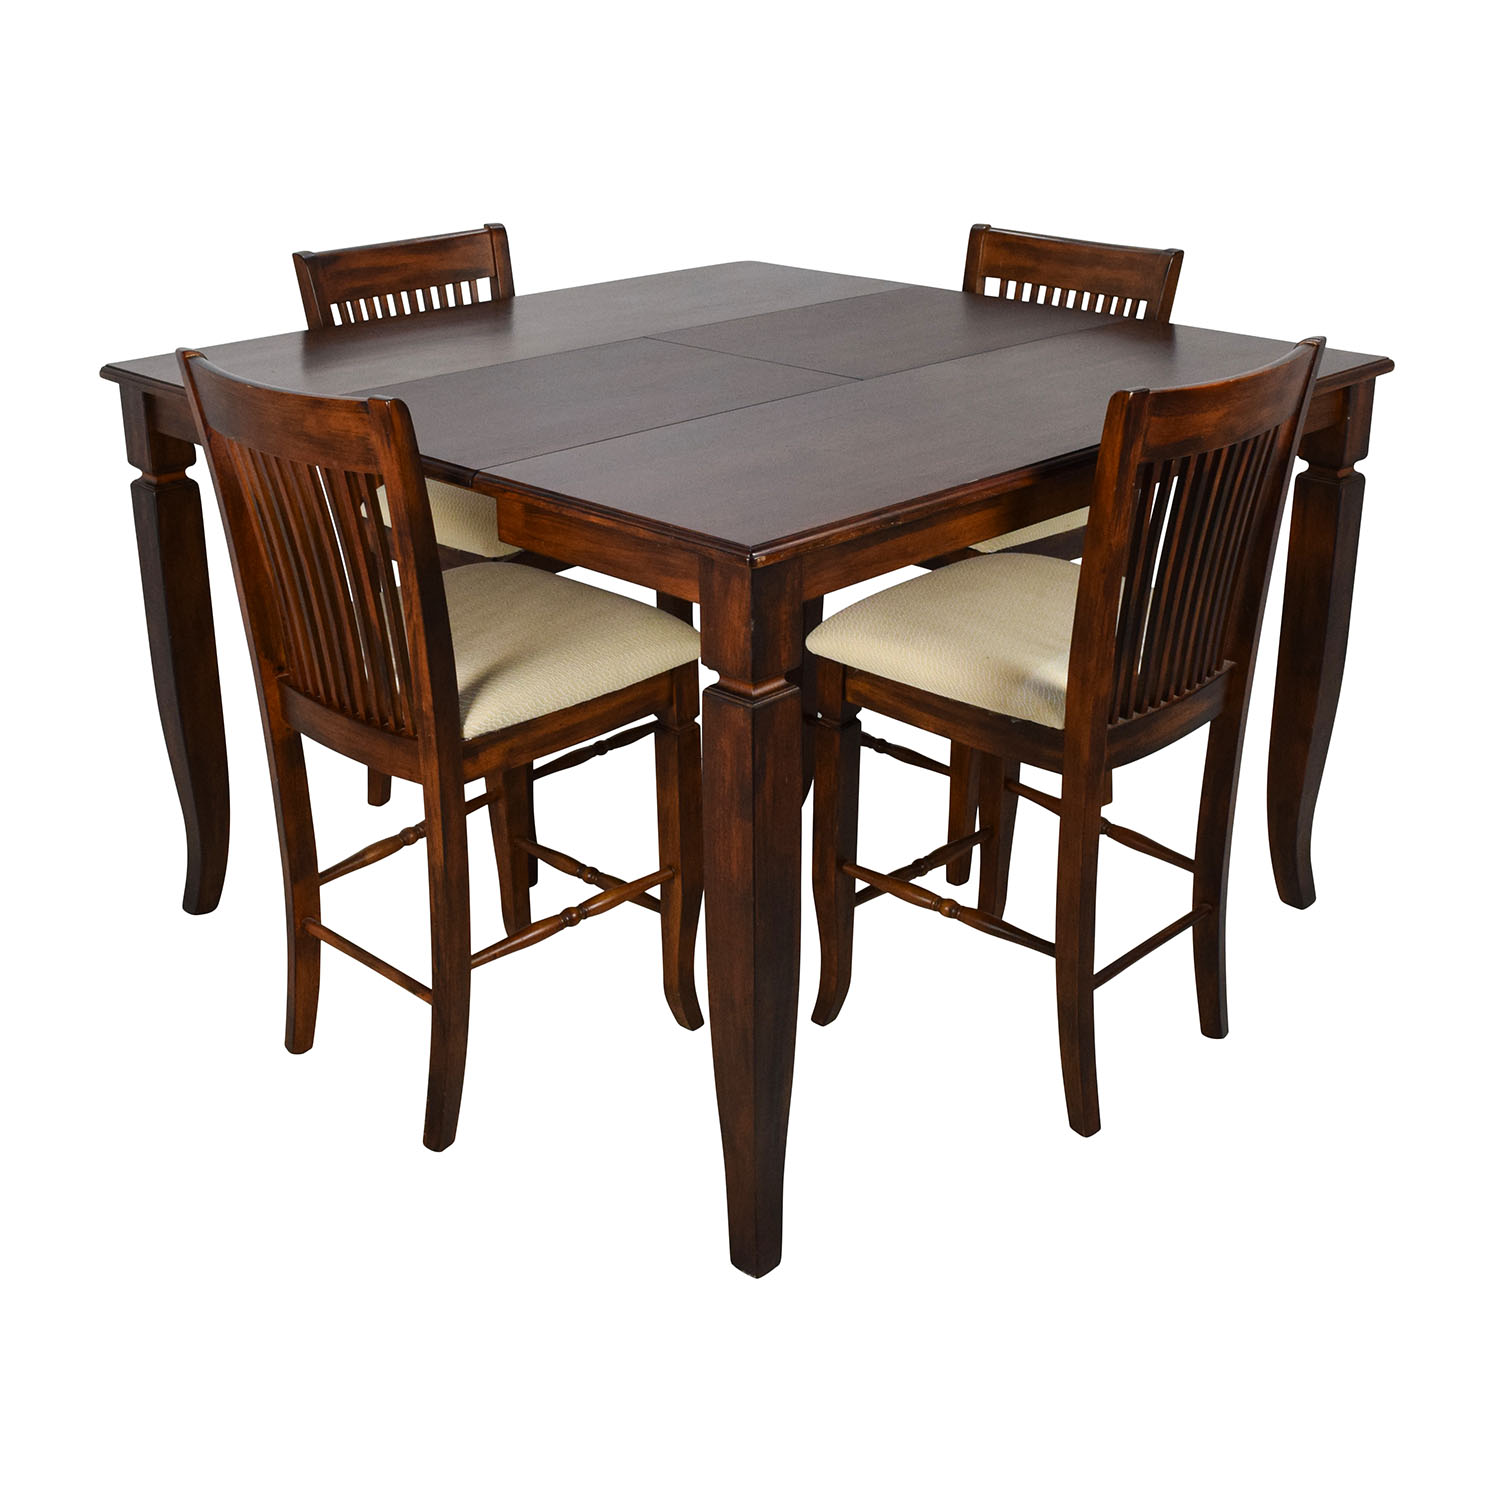 75 OFF Tall Extendable Dining Room Table Set Tables : used tall extendable dining room table set from furnishare.com size 1500 x 1500 jpeg 218kB